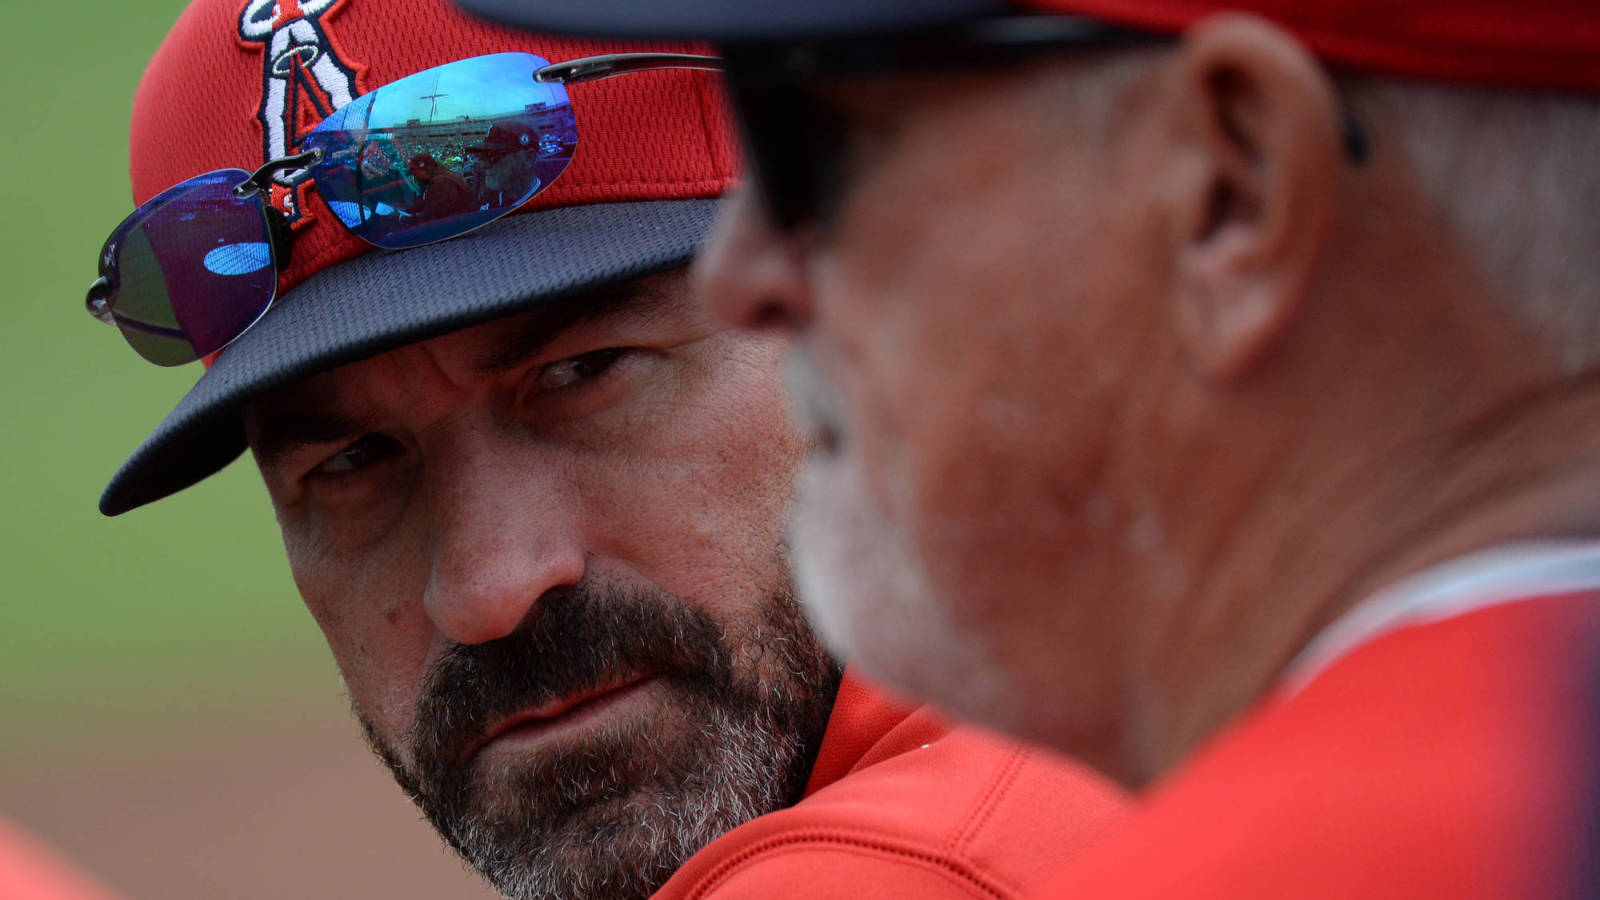 Additional details on allegations against Mickey Callaway emerge